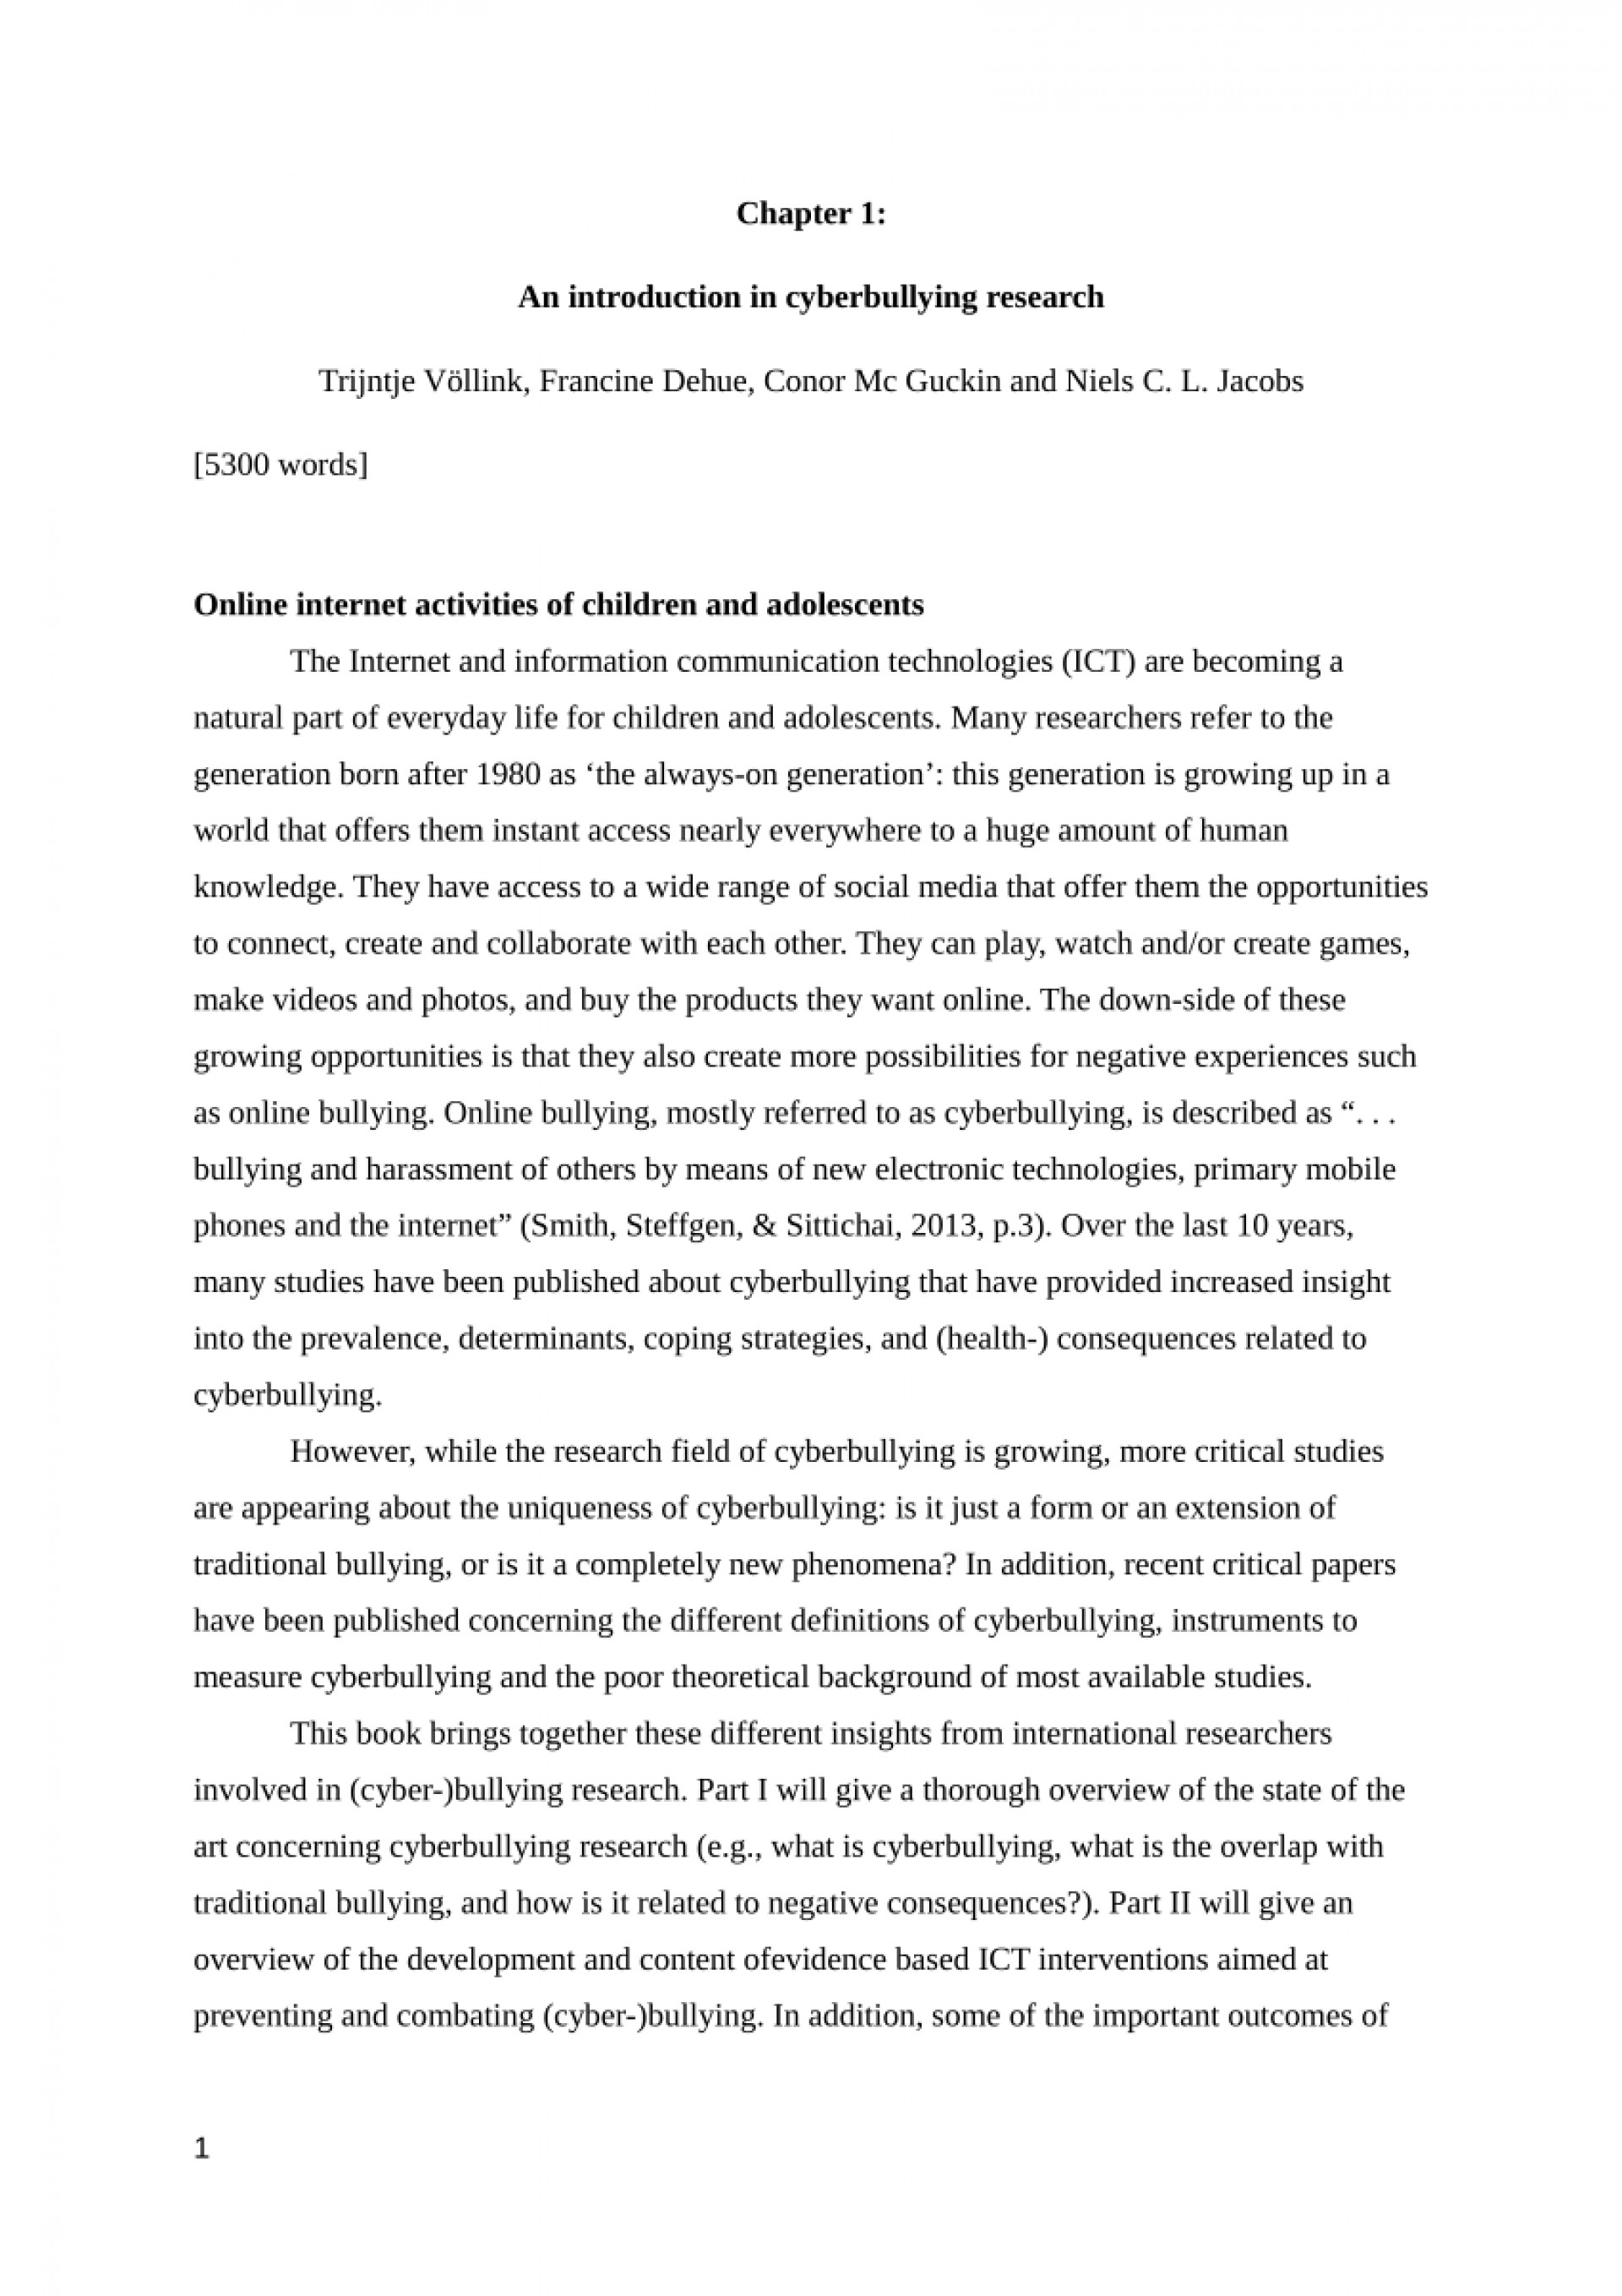 002 Research Paper Cyberbullying Top Center 2015 Outline 1920